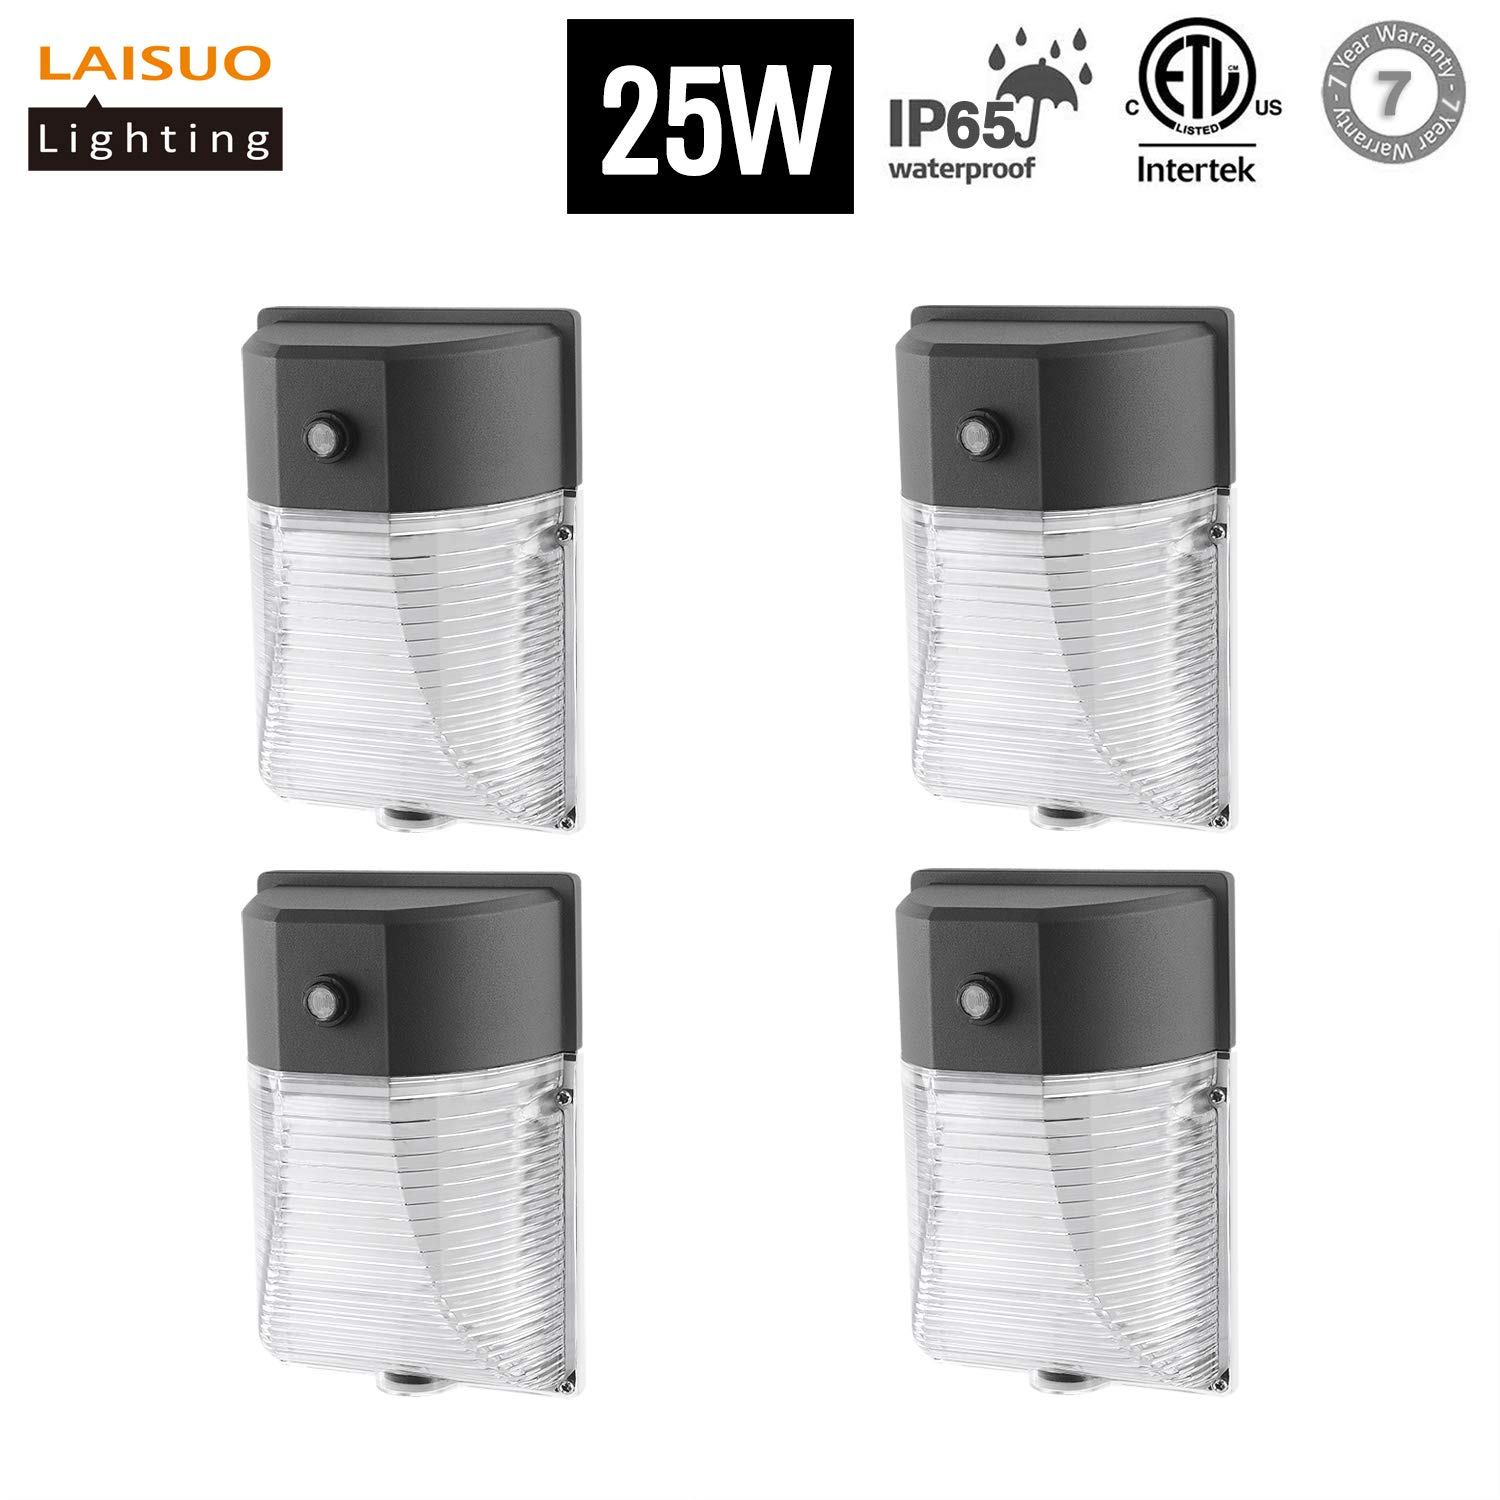 LAISUO 25W LED Wall Pack Light Dusk-to-Dawn Photocell 2750lm 5000K Daylight White 100W Replacement Waterproof Outdoor Security Lighting for Walkways, Garden, Yard, Isolated Power, ETL Listed, 4 Pack